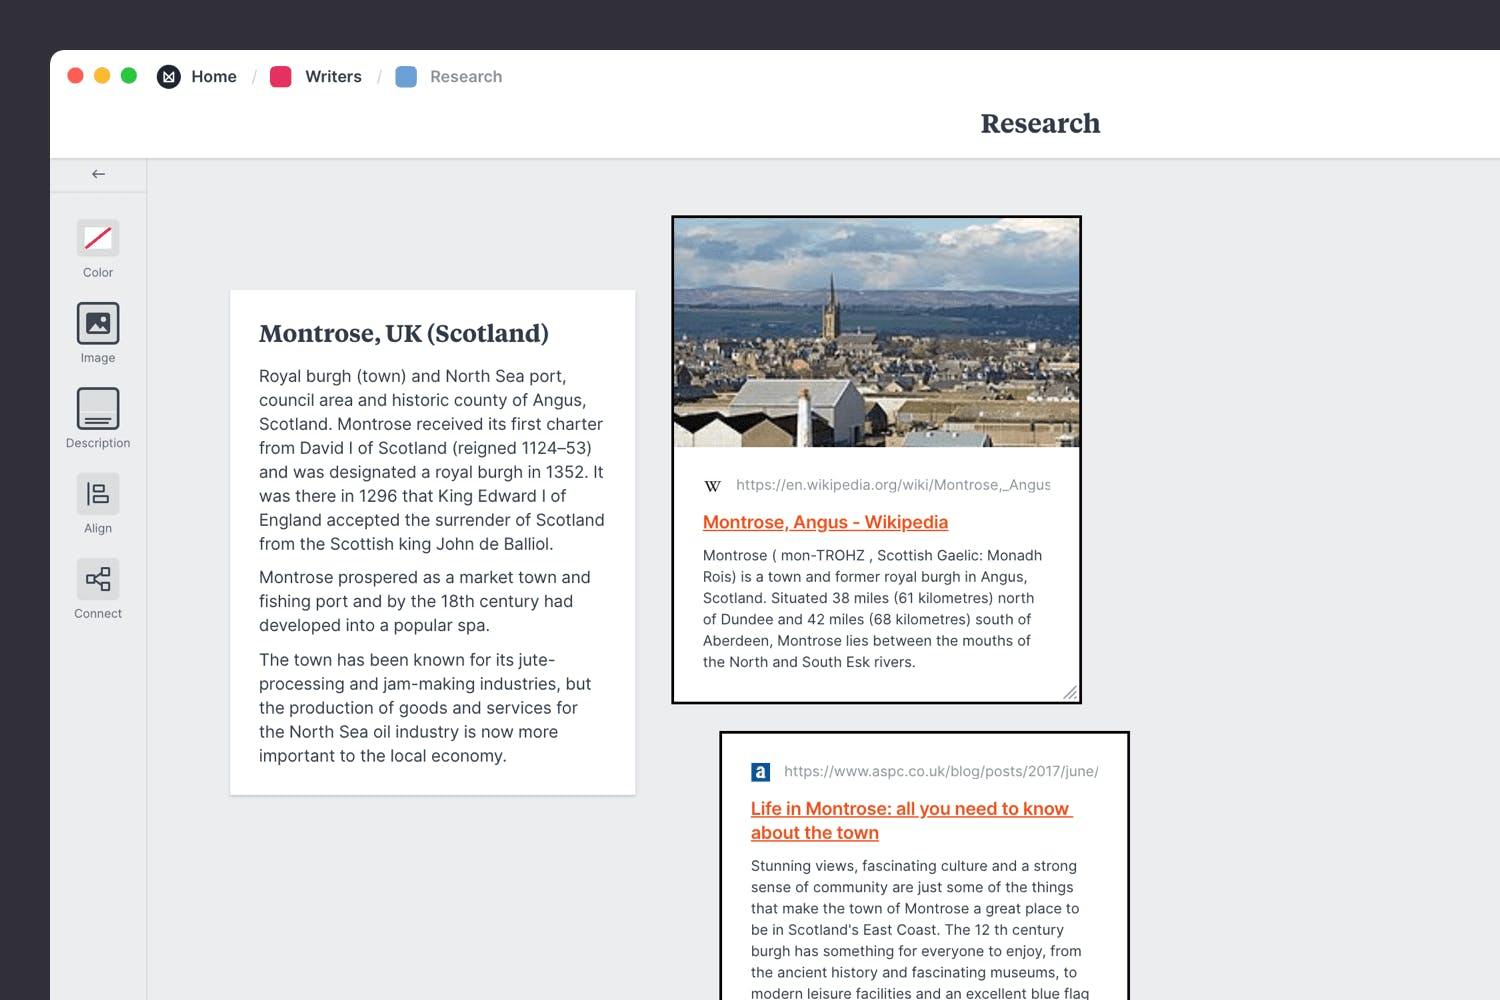 Collecting articles and news clippings for novel research